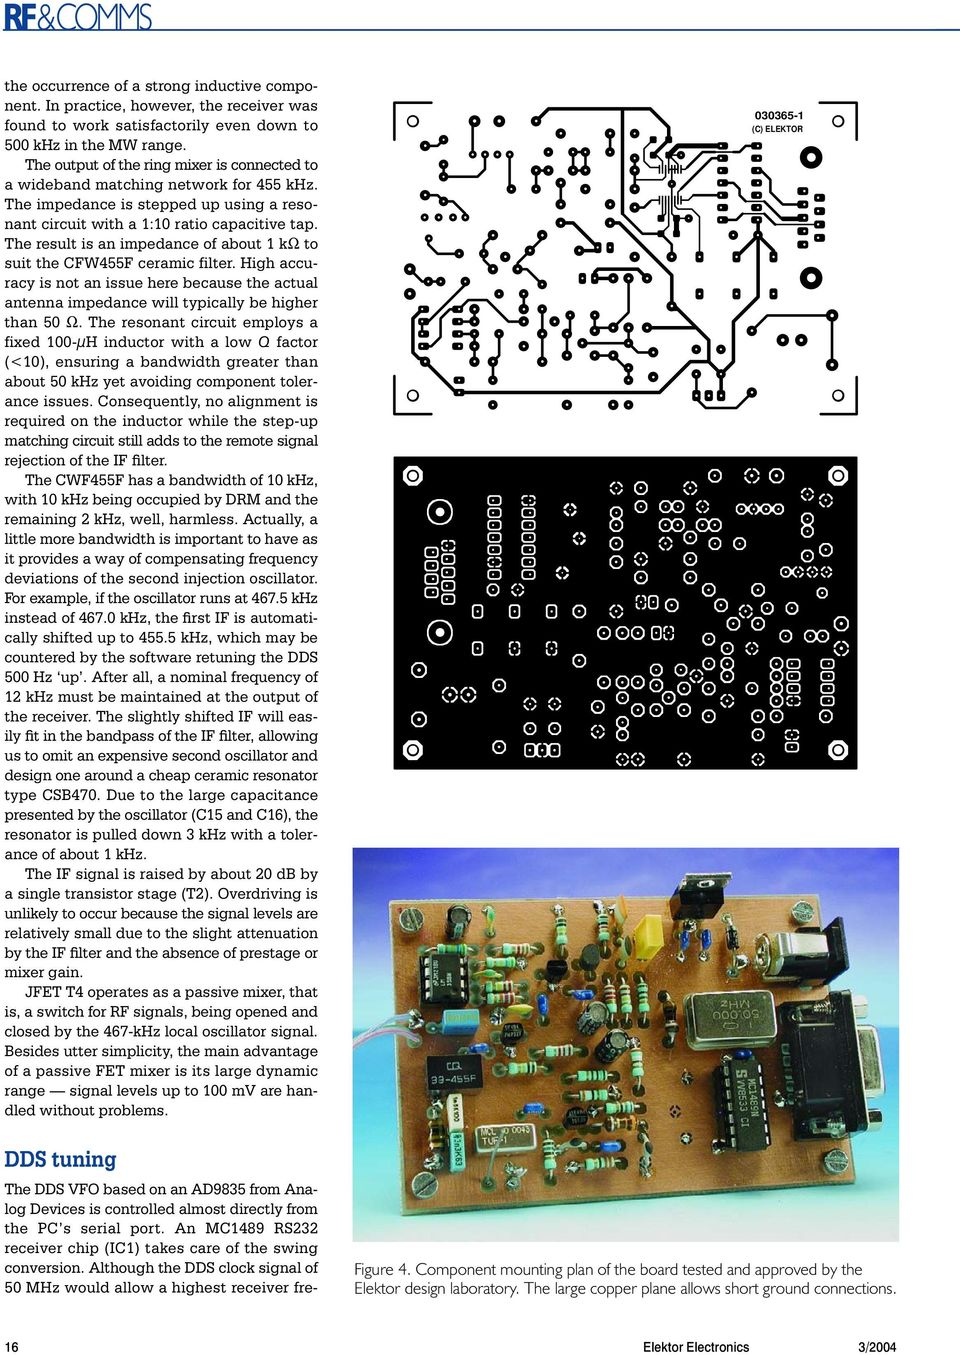 Build Your Own Drm Receiver Pdf The Schematic Diagram Below Besides Sdr Likewise Fm Result Is An Impedance Of About K To Suit Cfw4f Ceramic Filter High